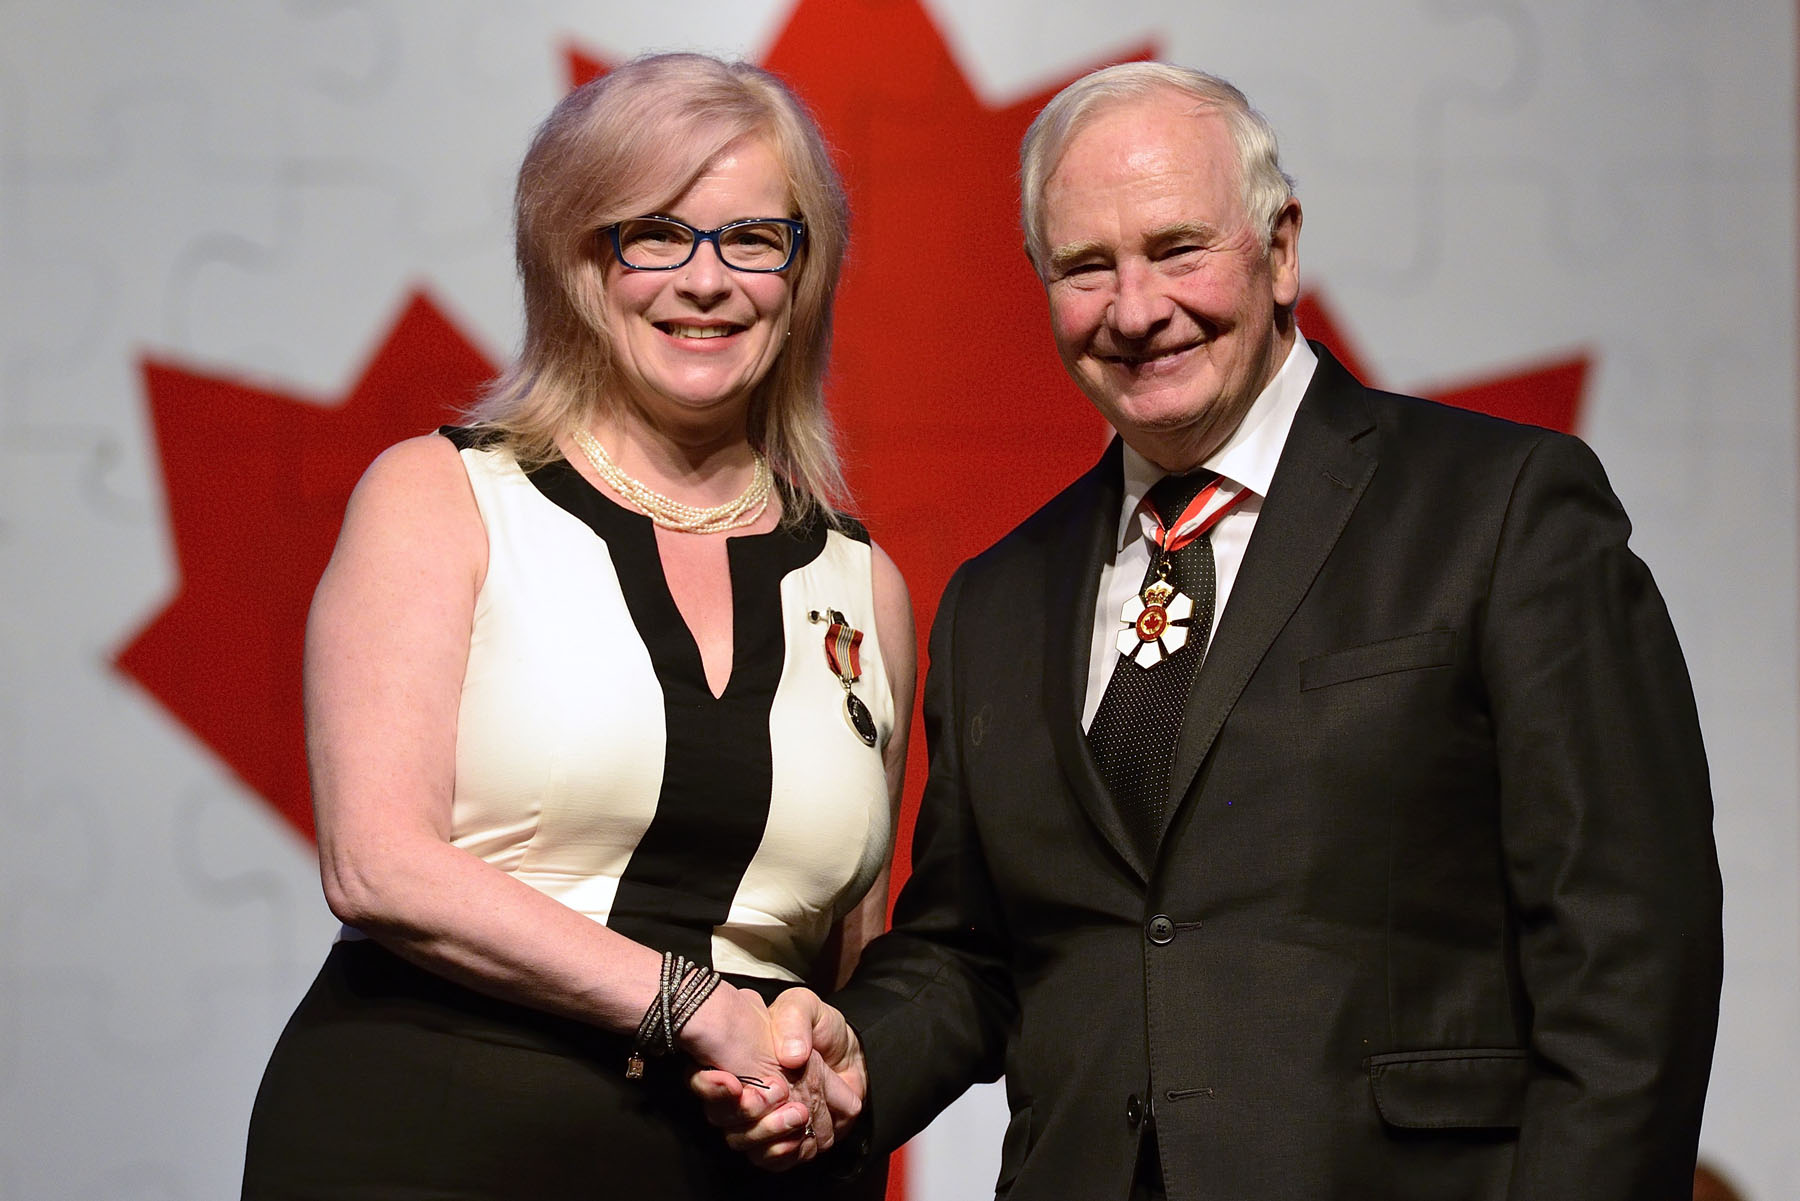 The Sovereign's Medal for Volunteers was presented to Michelle Blanchard for working to advance the arts and culture of Prince Edward Island's Francophone and Acadian community through Music PEI and the Fédération culturelle de l'Île-du-Prince-Édouard. Serving in executive positions with both organizations, she has helped preserve and nurture her culture in Atlantic Canada.